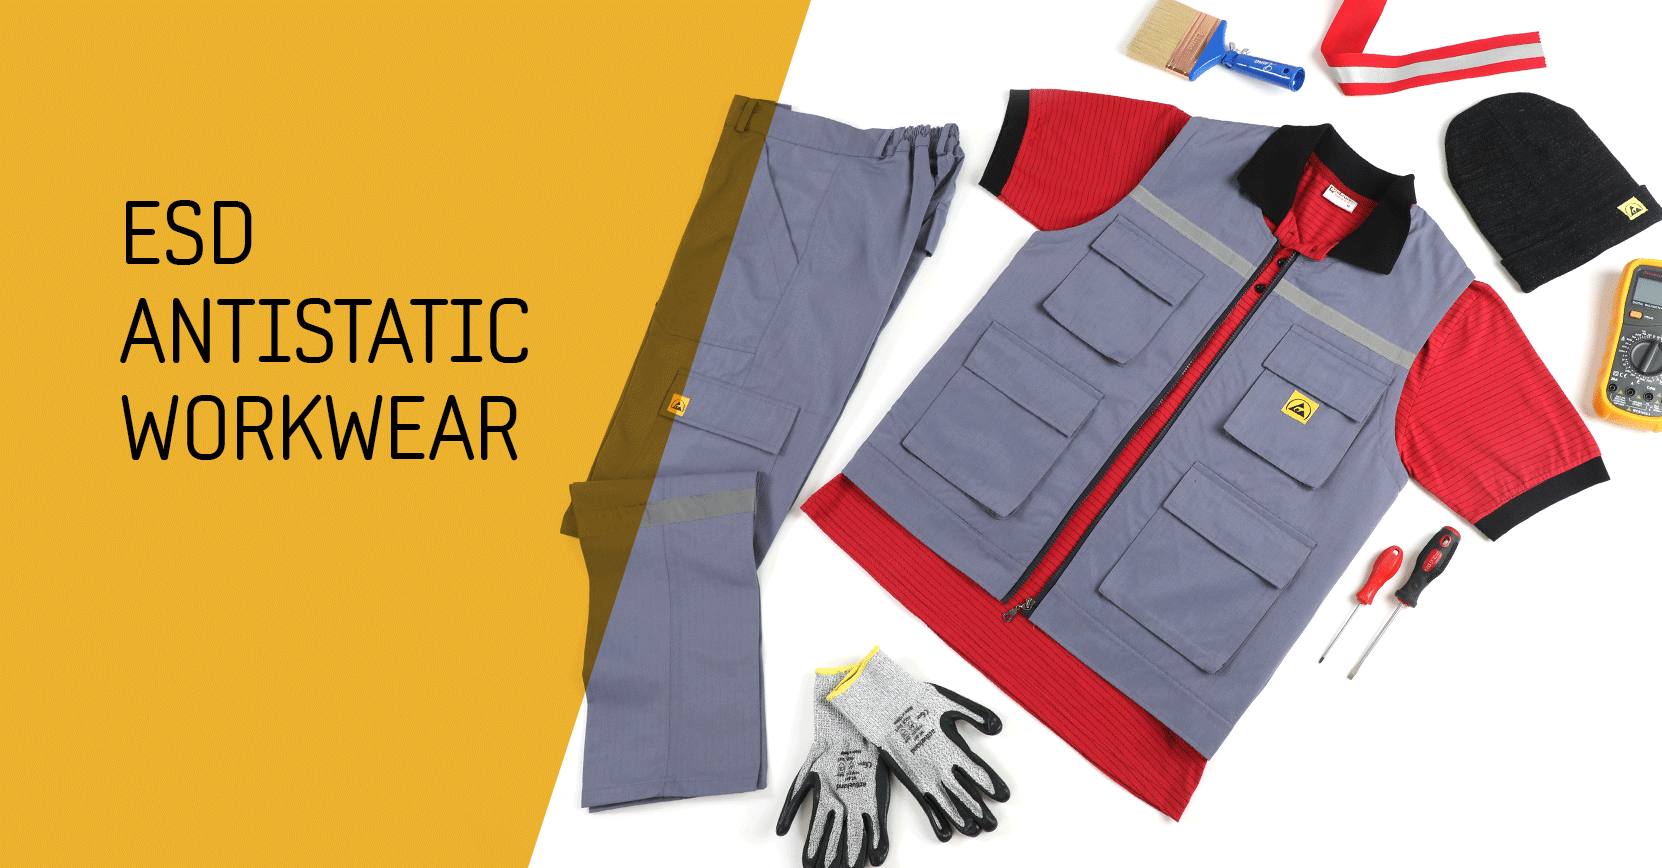 ESD